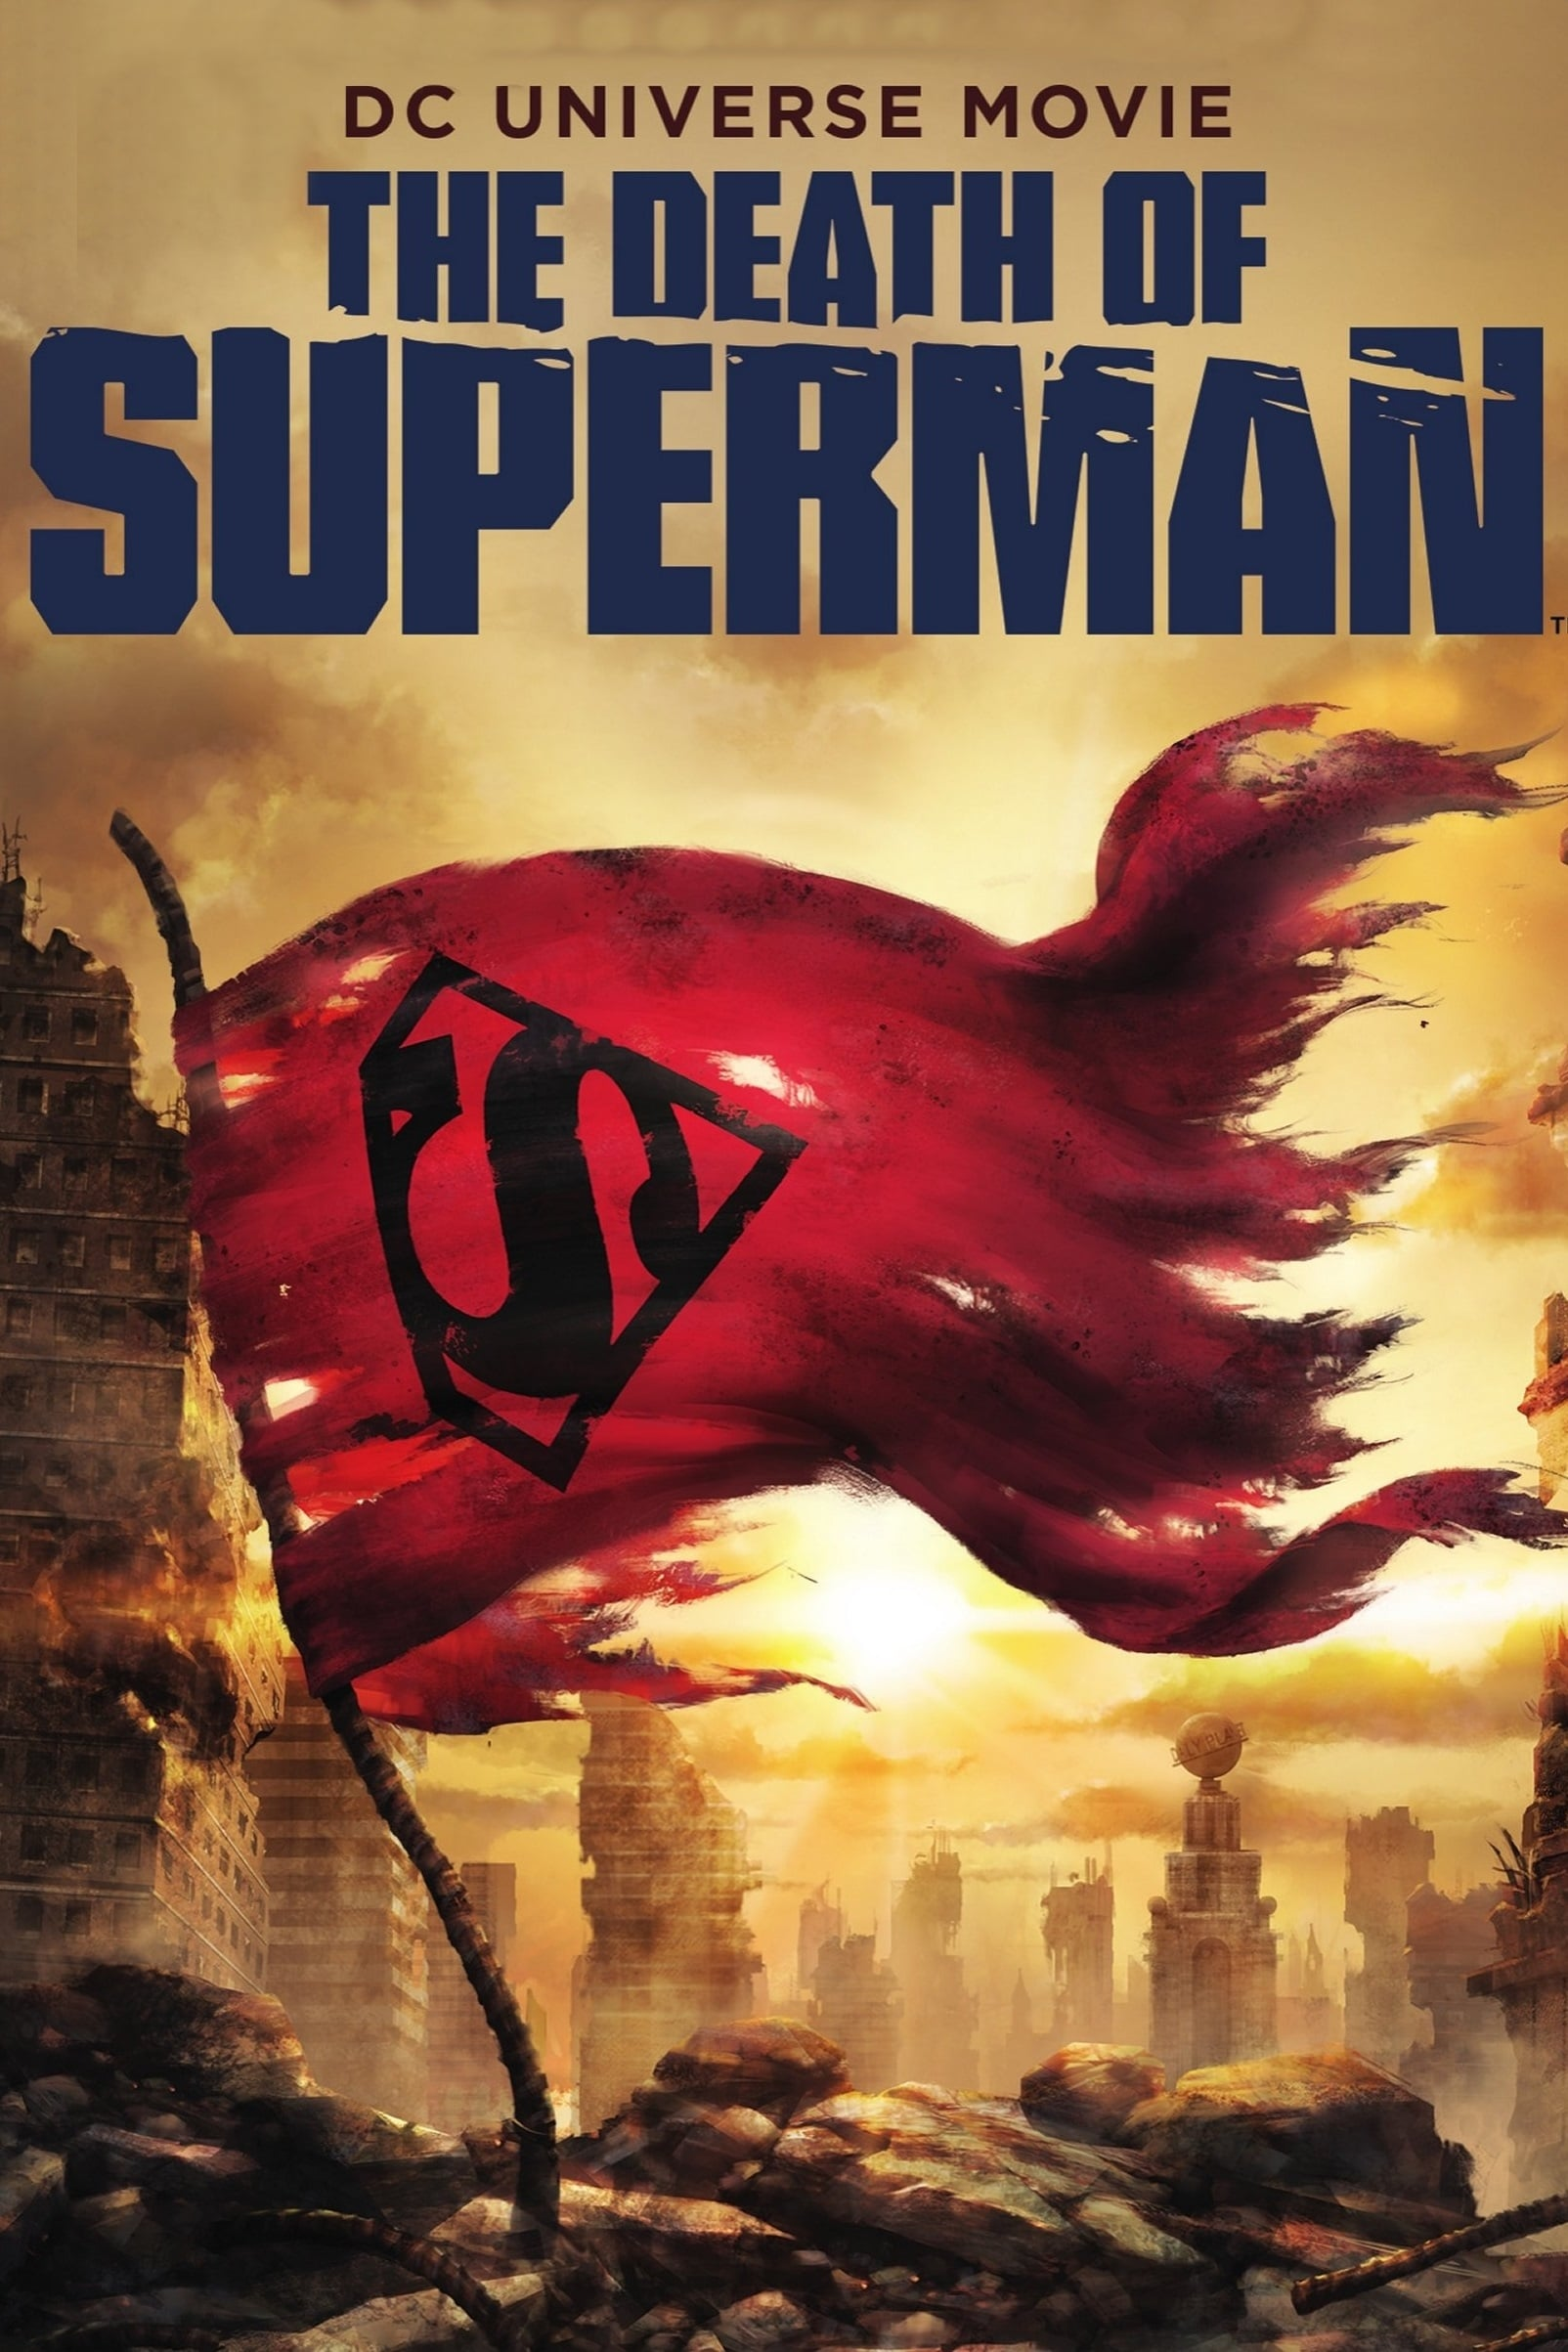 The Death of Superman (Video 2018) - IMDb